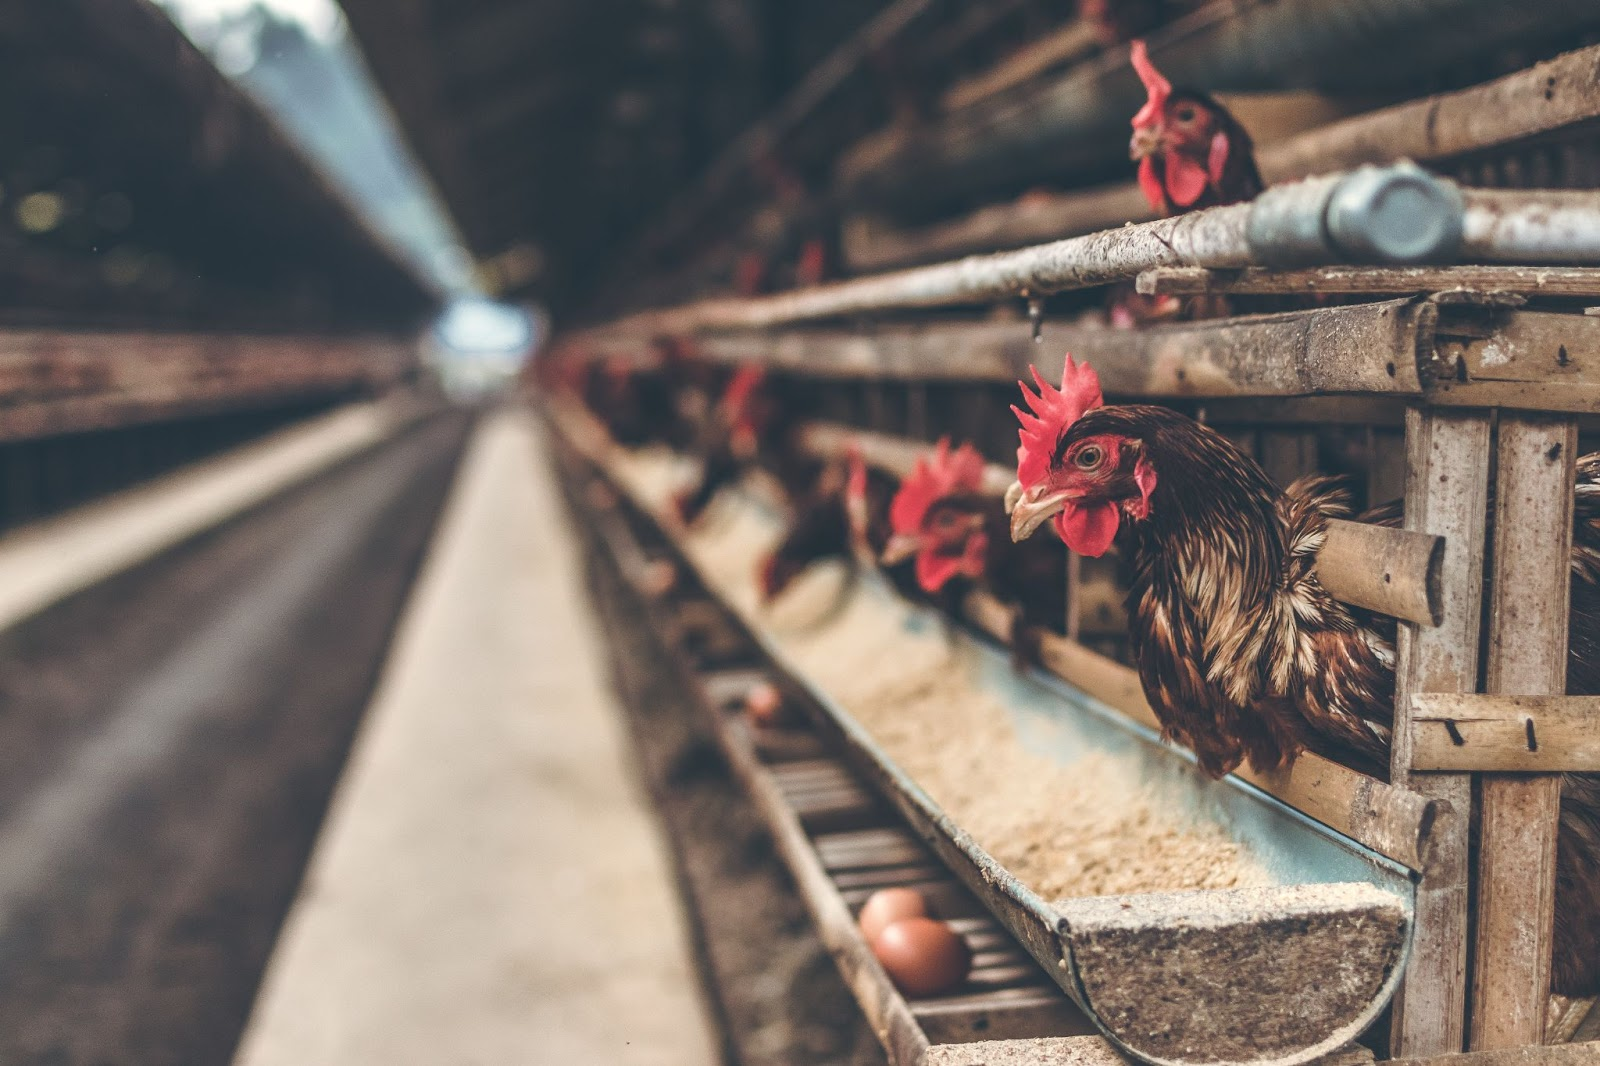 chickens in their cages in a poultry farm